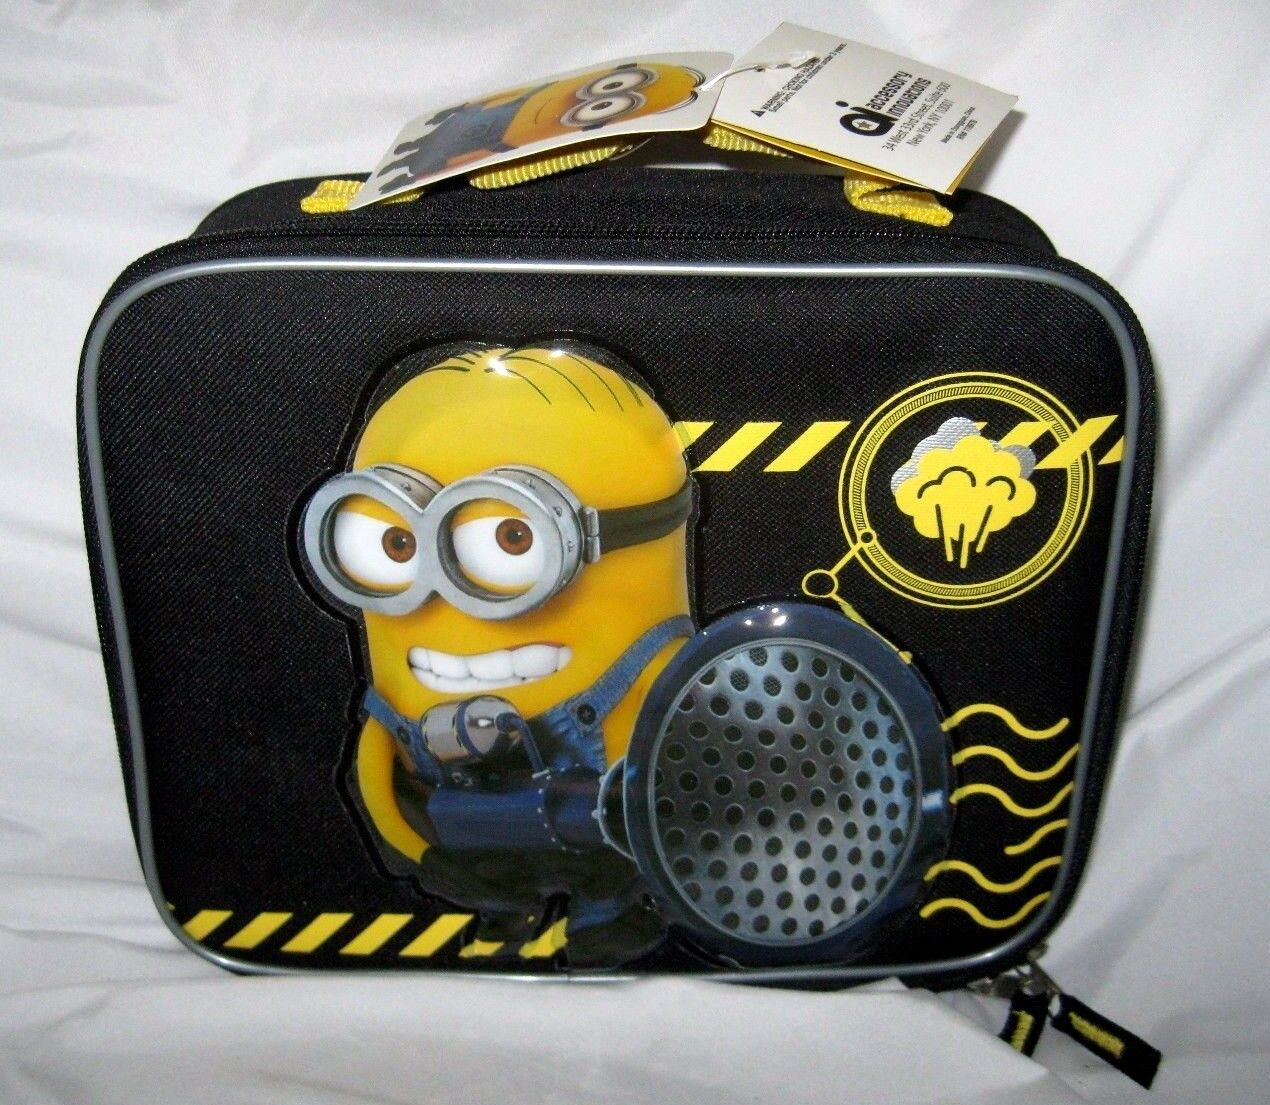 DESPICABLE ME 3 MINIONS BLOW HORN BLASTER 9.5    INSULATED LUNCHBOX LUNCH BAG-NEW 22dd1d